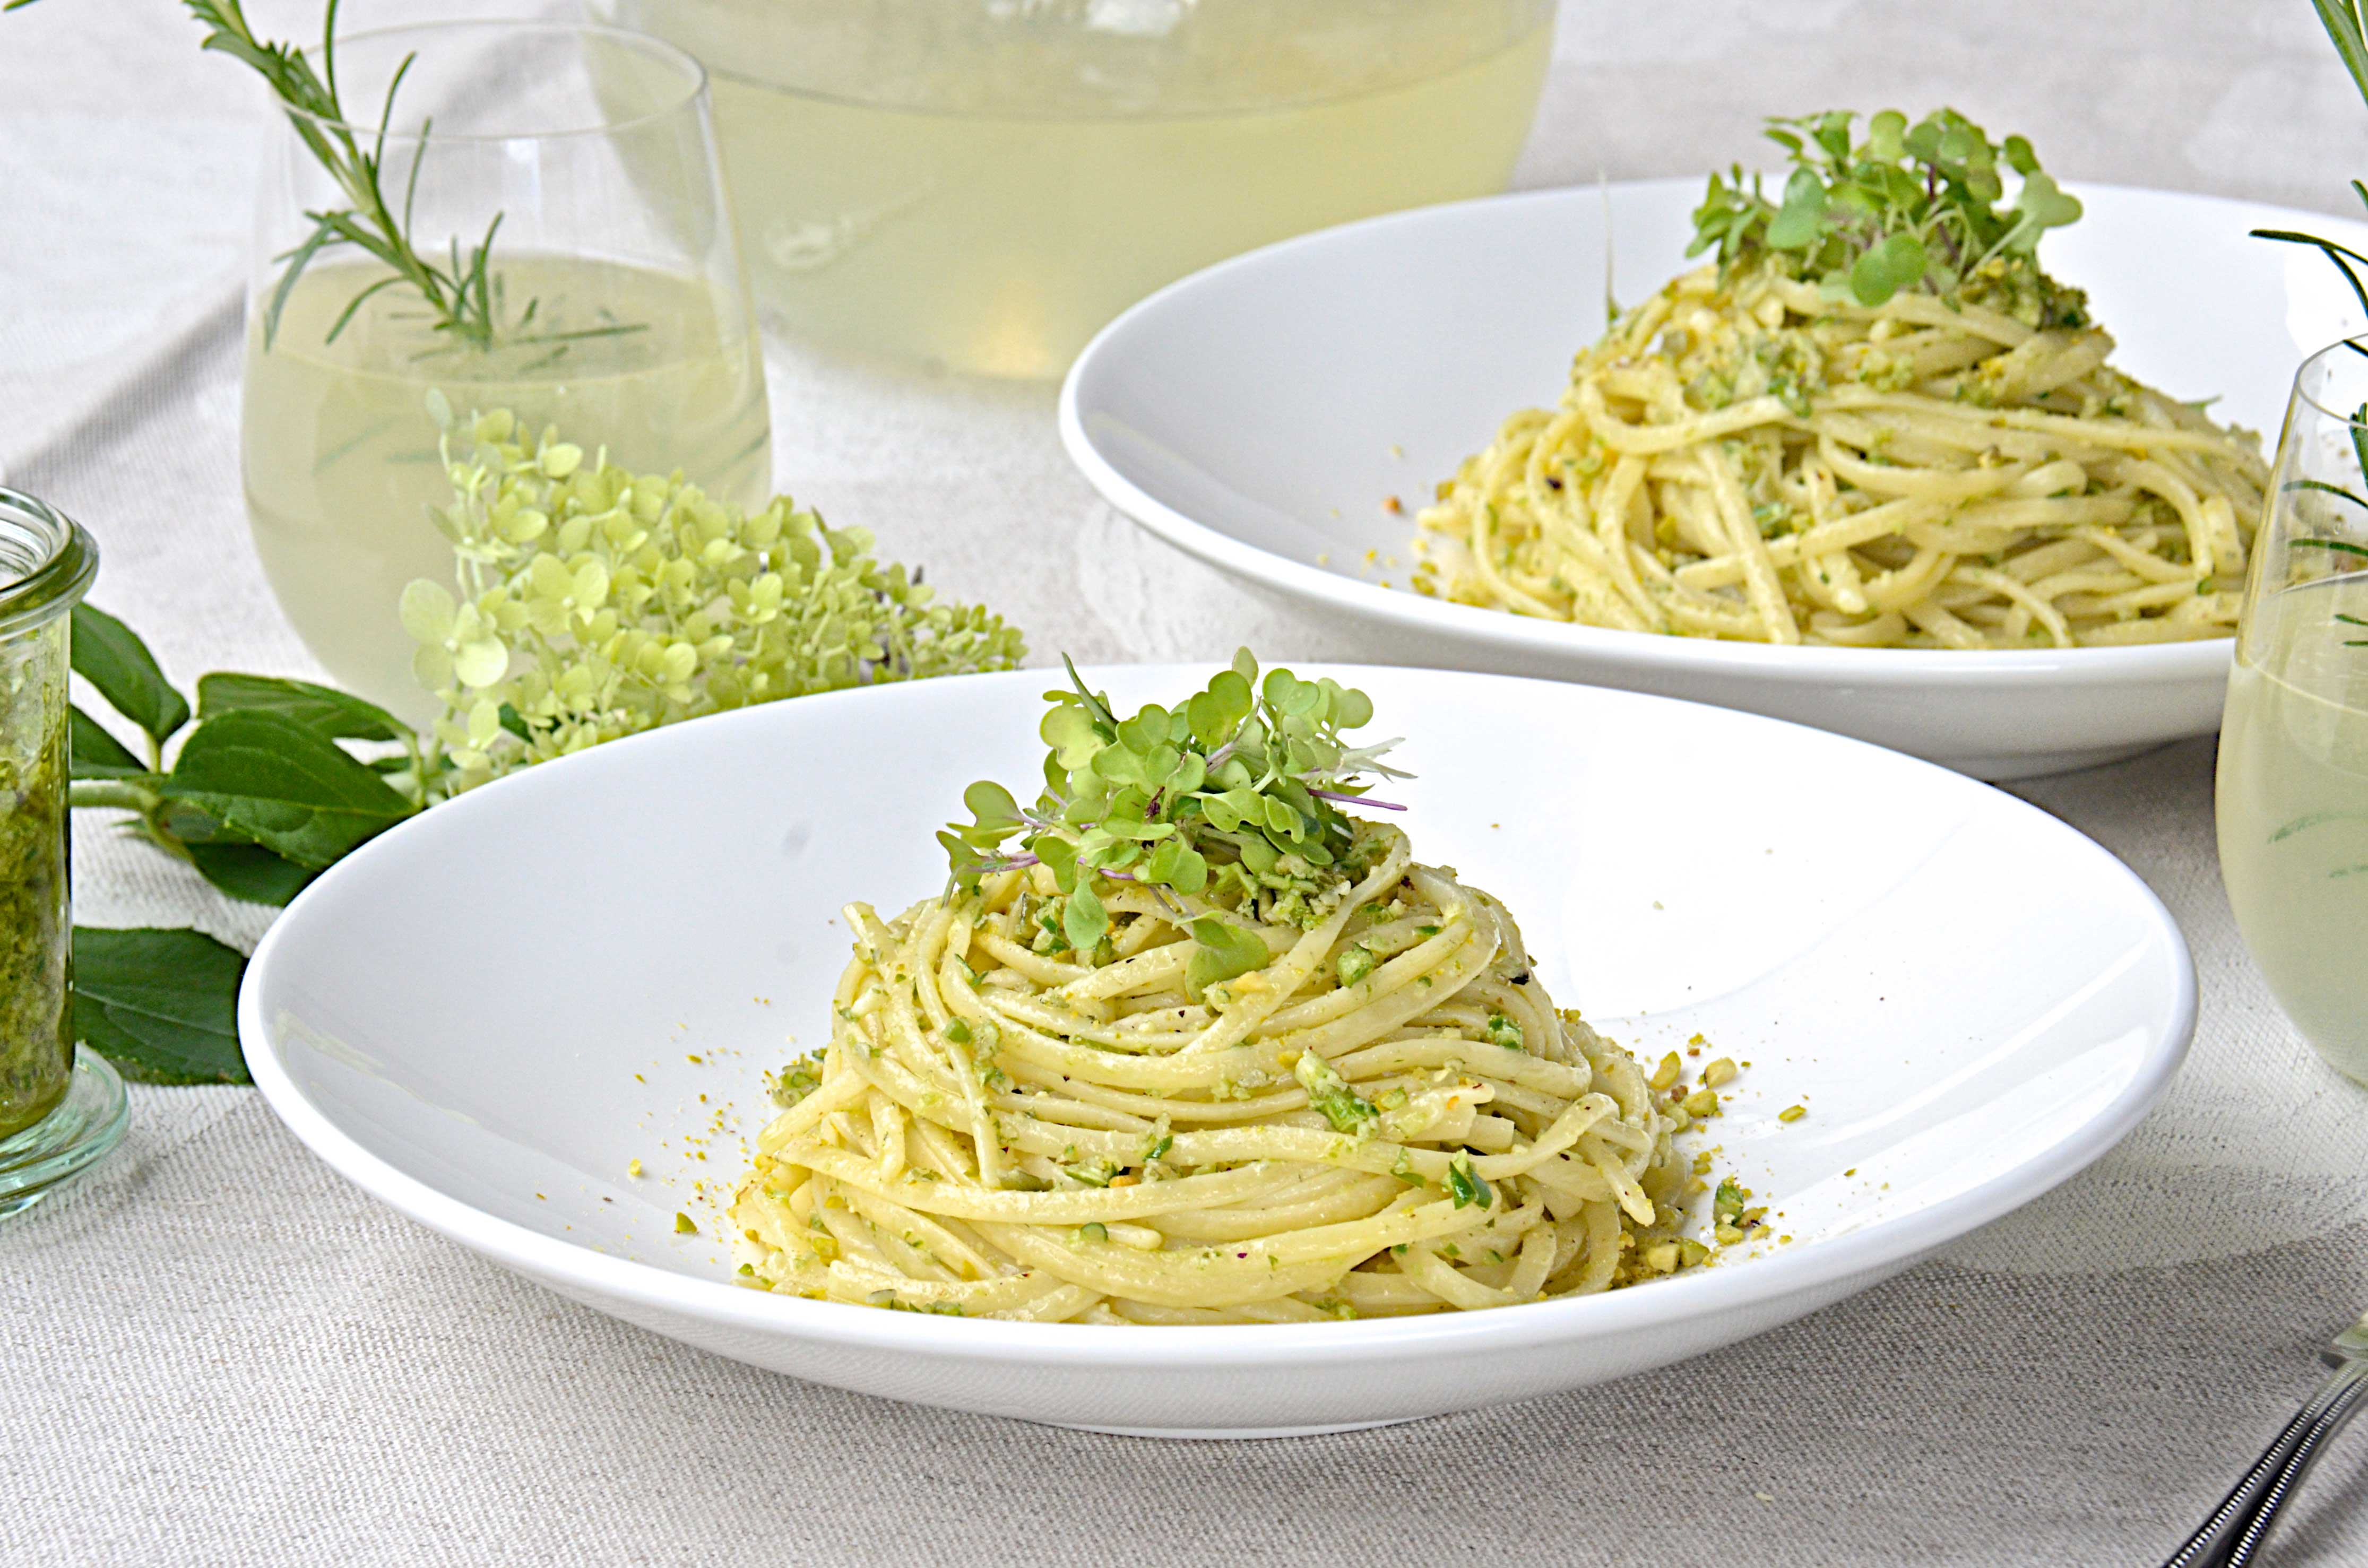 Garlic scapes and pasta recipes